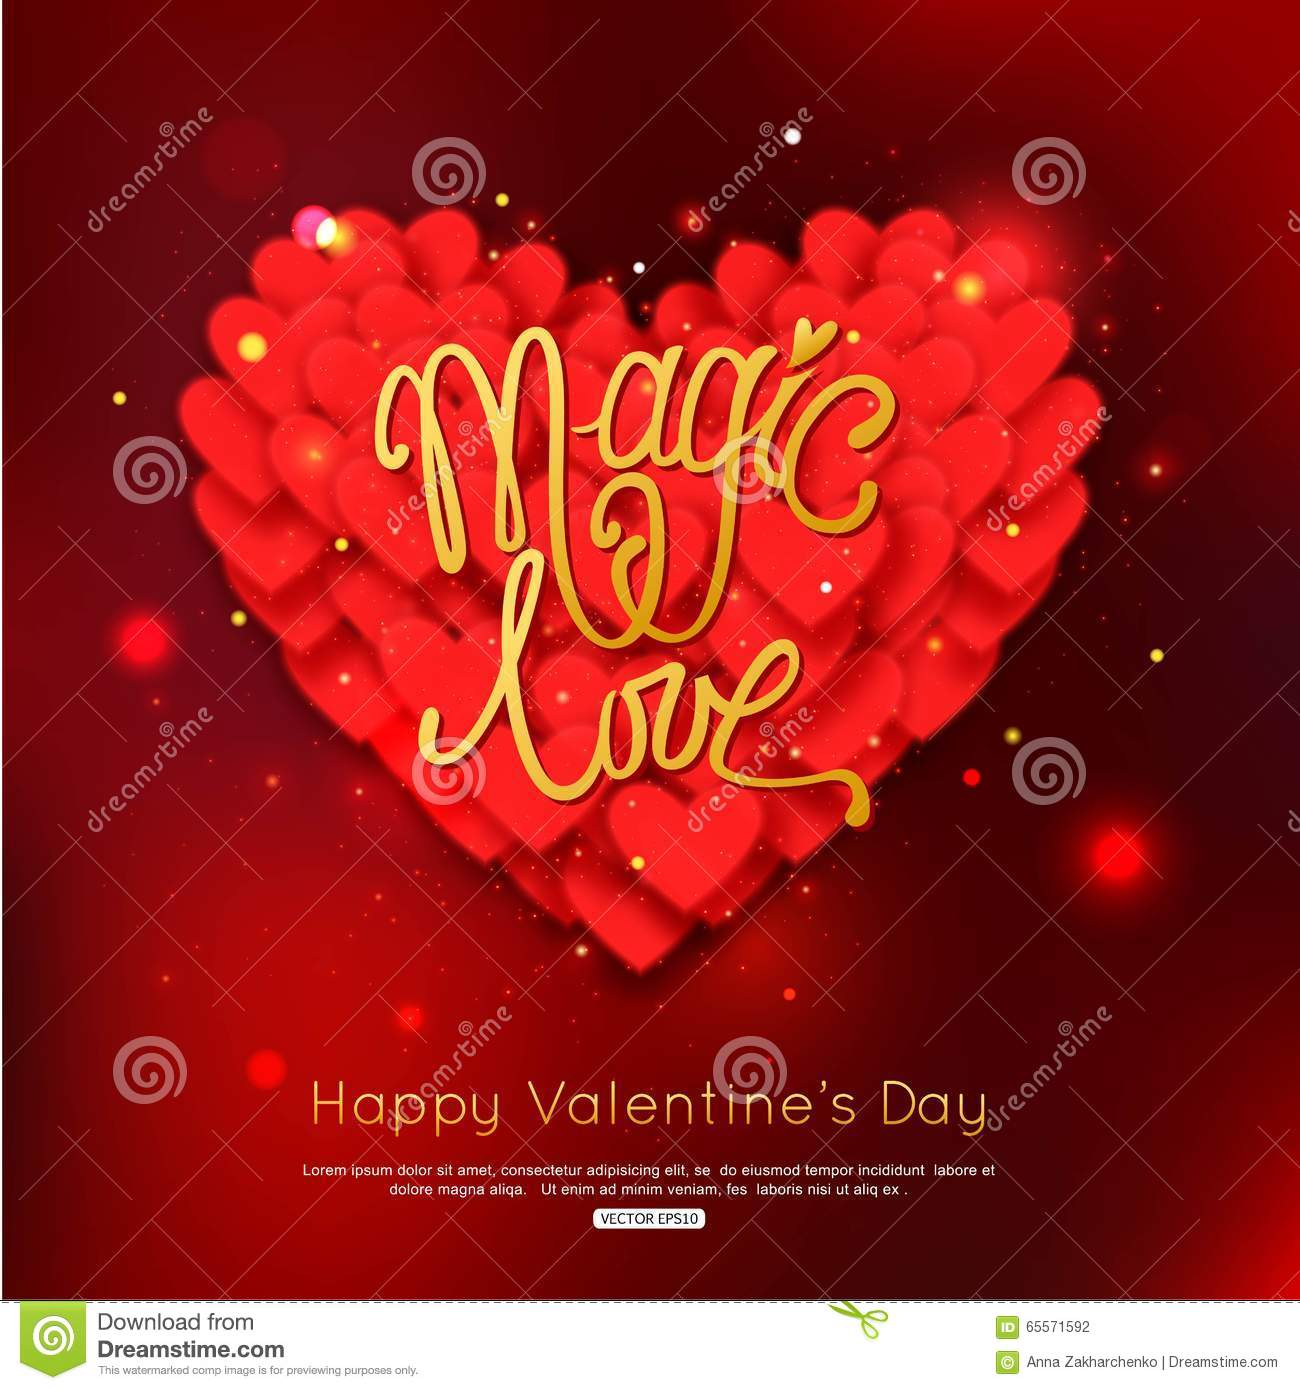 Magic love valentines day greeting card happy valentines day magic love valentines day greeting card happy valentines day background kristyandbryce Images